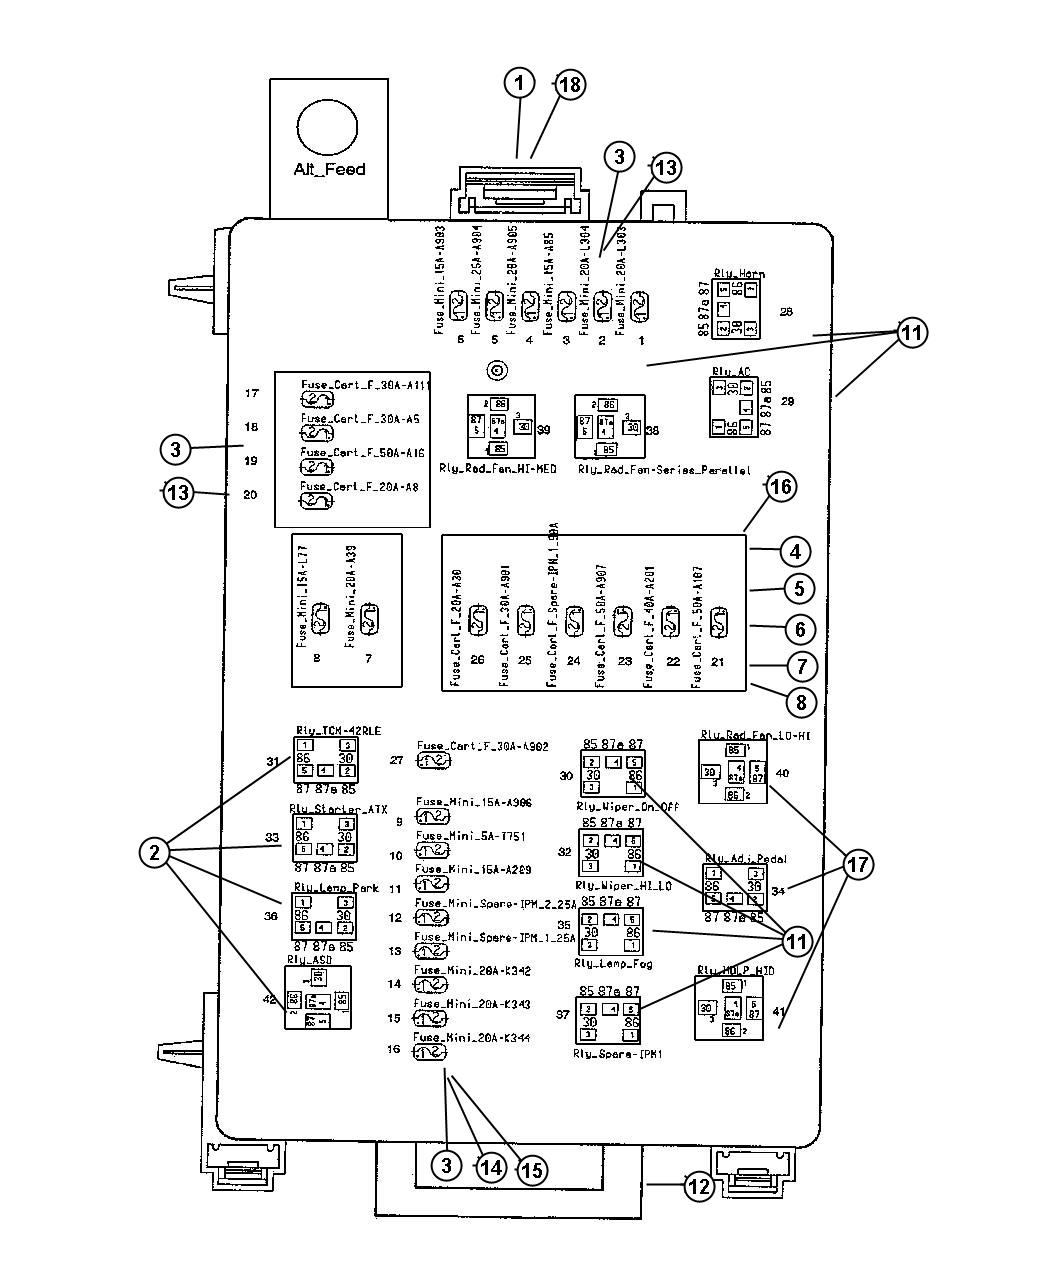 1978 Dodge Truck Wiring Diagram Collection